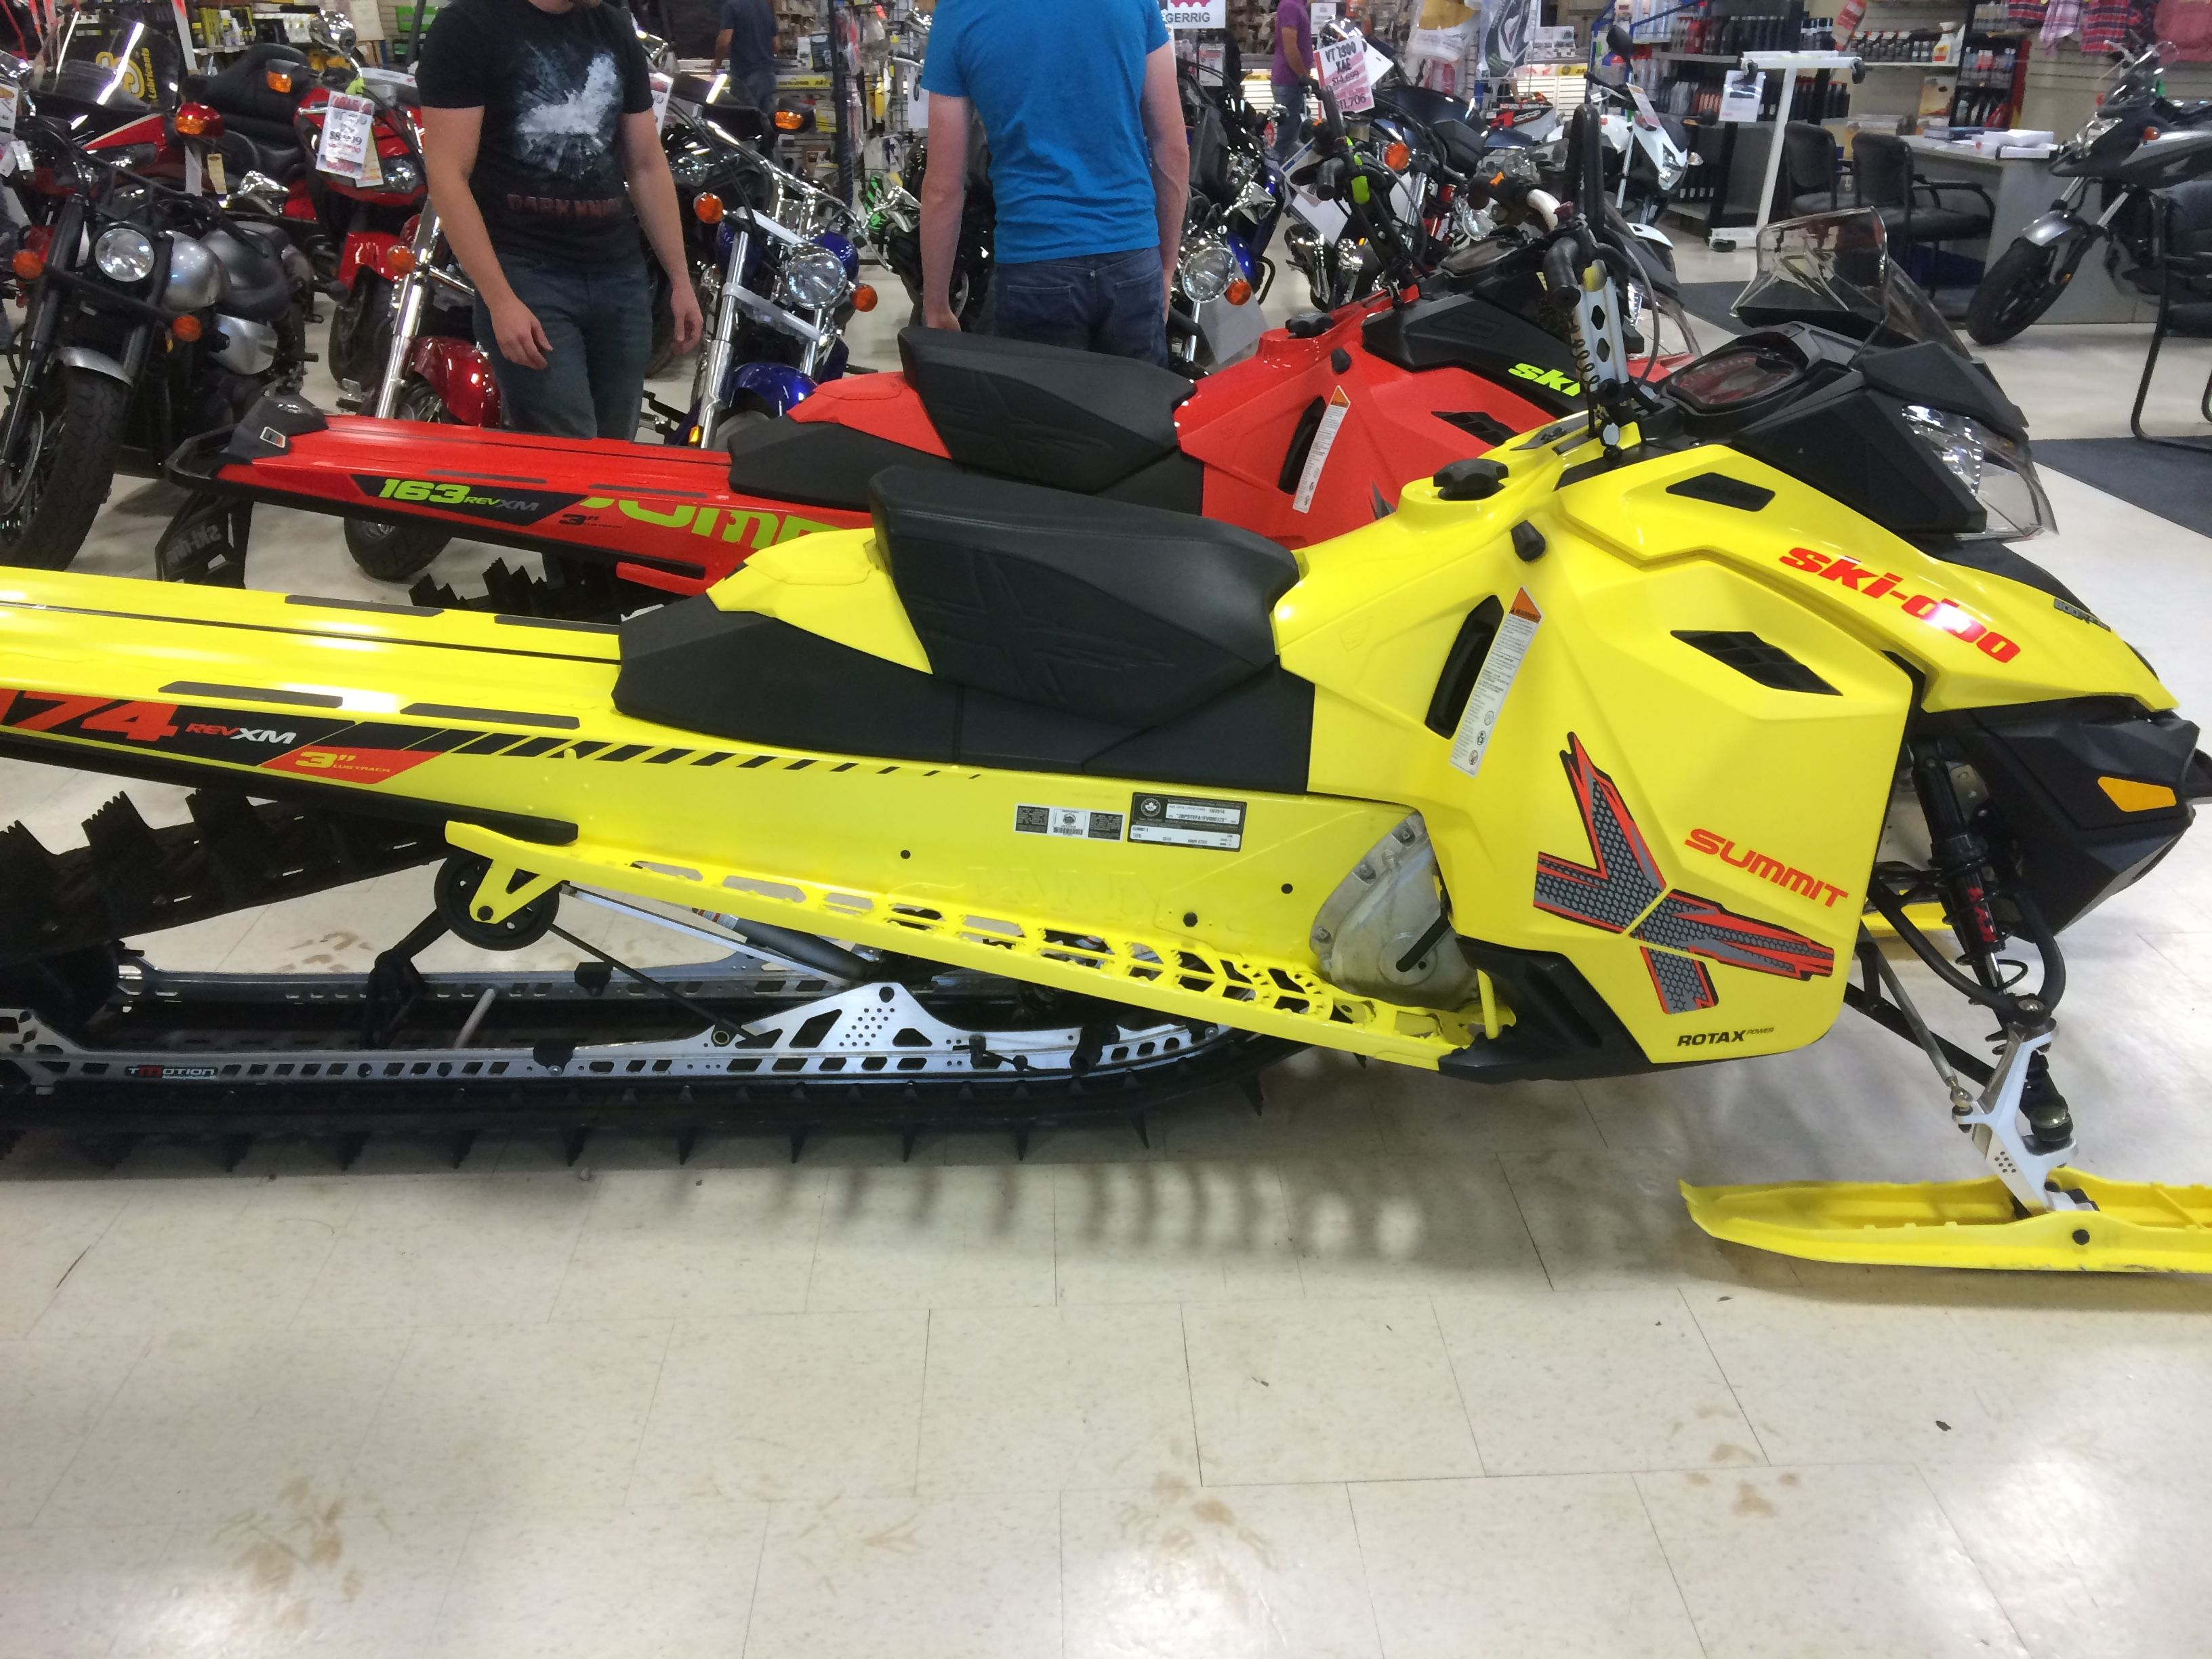 Pin by Jstogryn on arctic cat and ski doo Polaris sleds